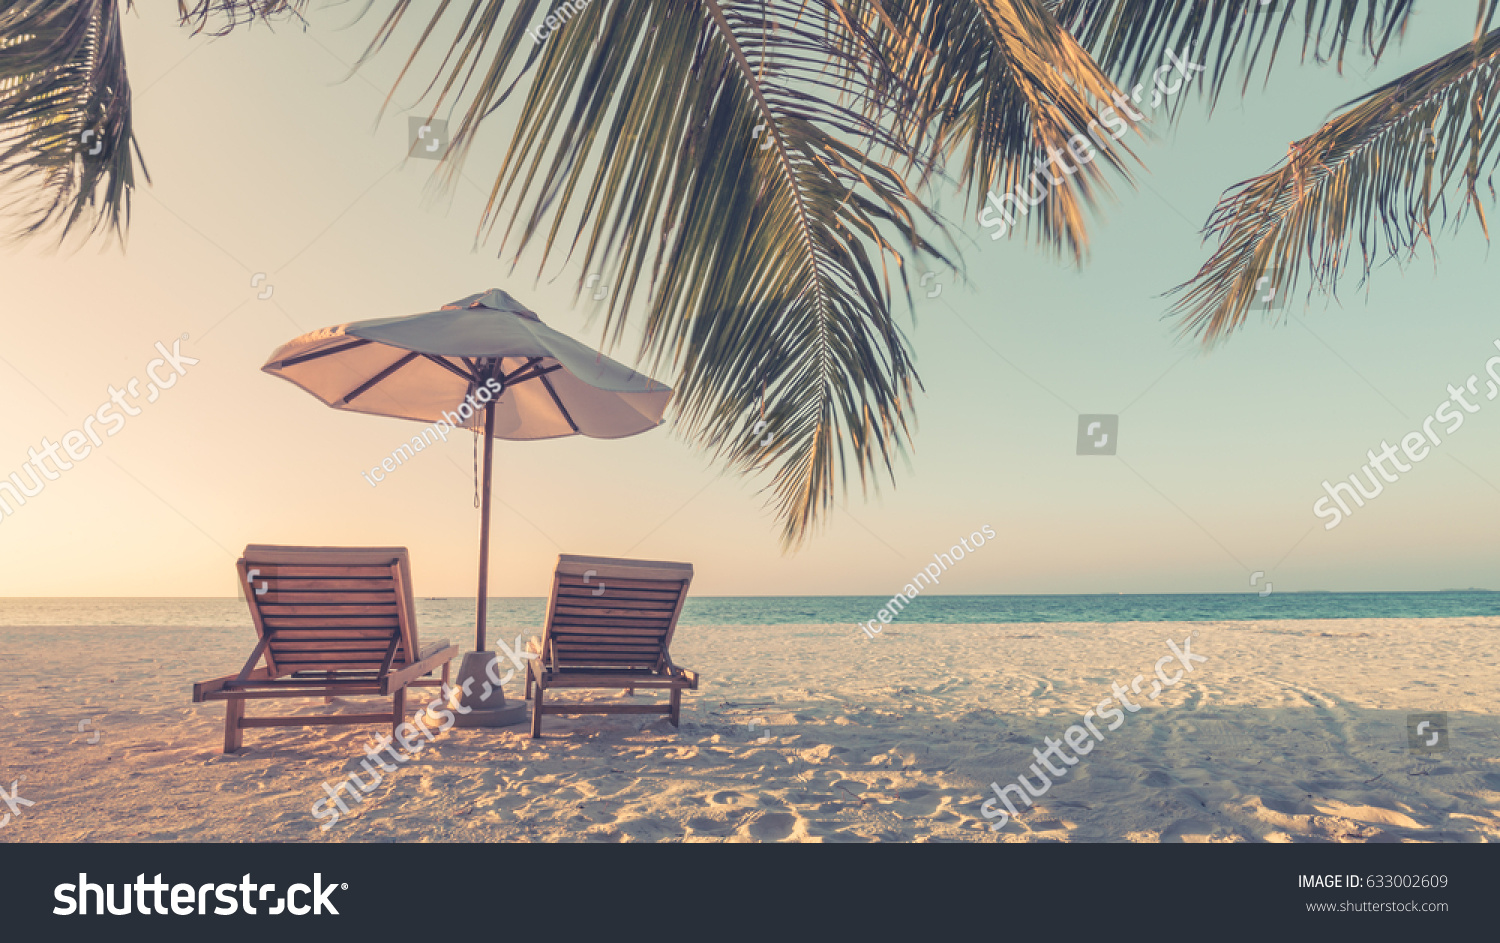 Beautiful beach. Summer holiday and vacation concept background. Inspirational tropical landscape design. Tourism and travel design #633002609